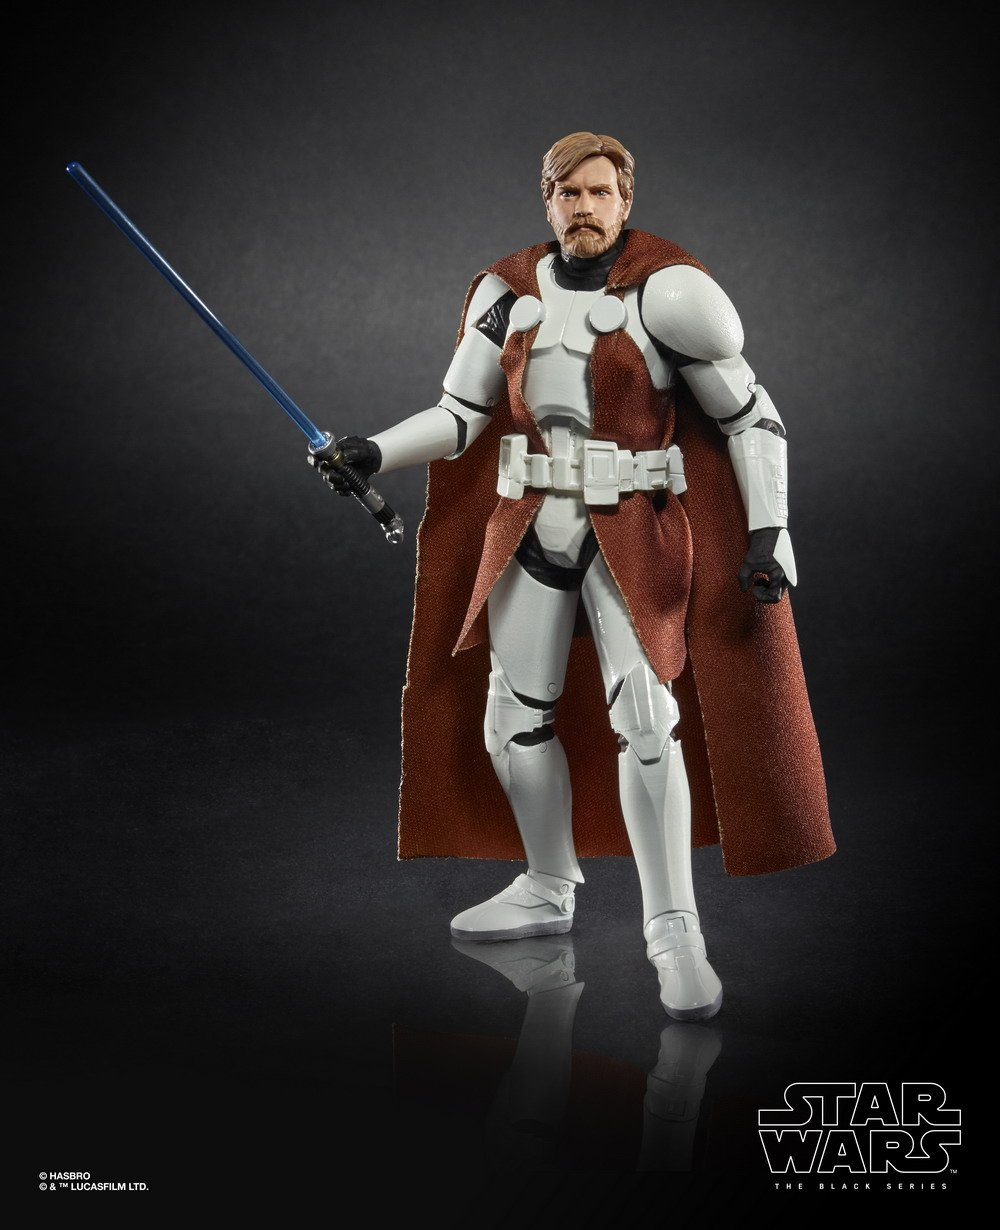 STAR WARS THE BLACK SERIES 6-INCH CLONE COMMANDER OBI-WAN KENOBI Figure (oop 1)